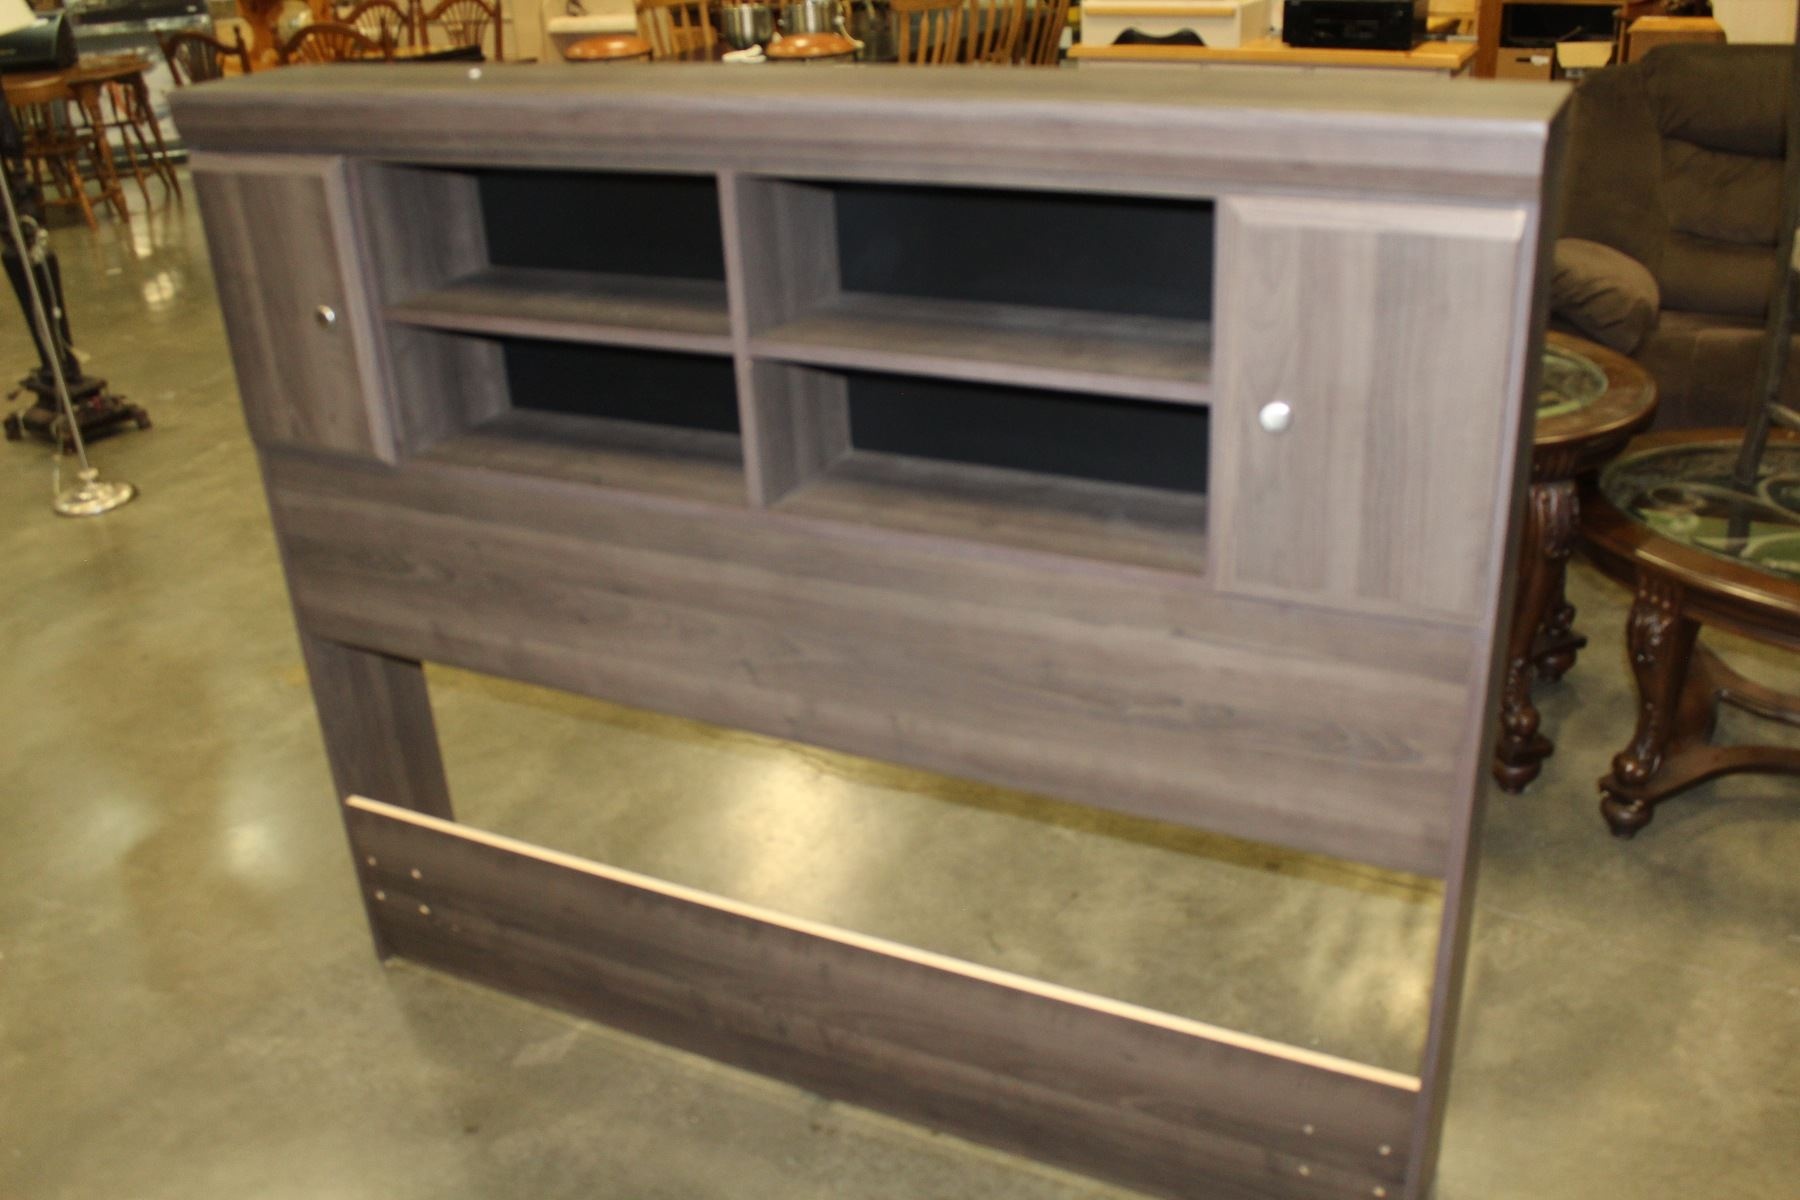 New Dynamic Furniture Cypress Queen Size Bookcase Headboard Shipping Damage From Handles Retail 3